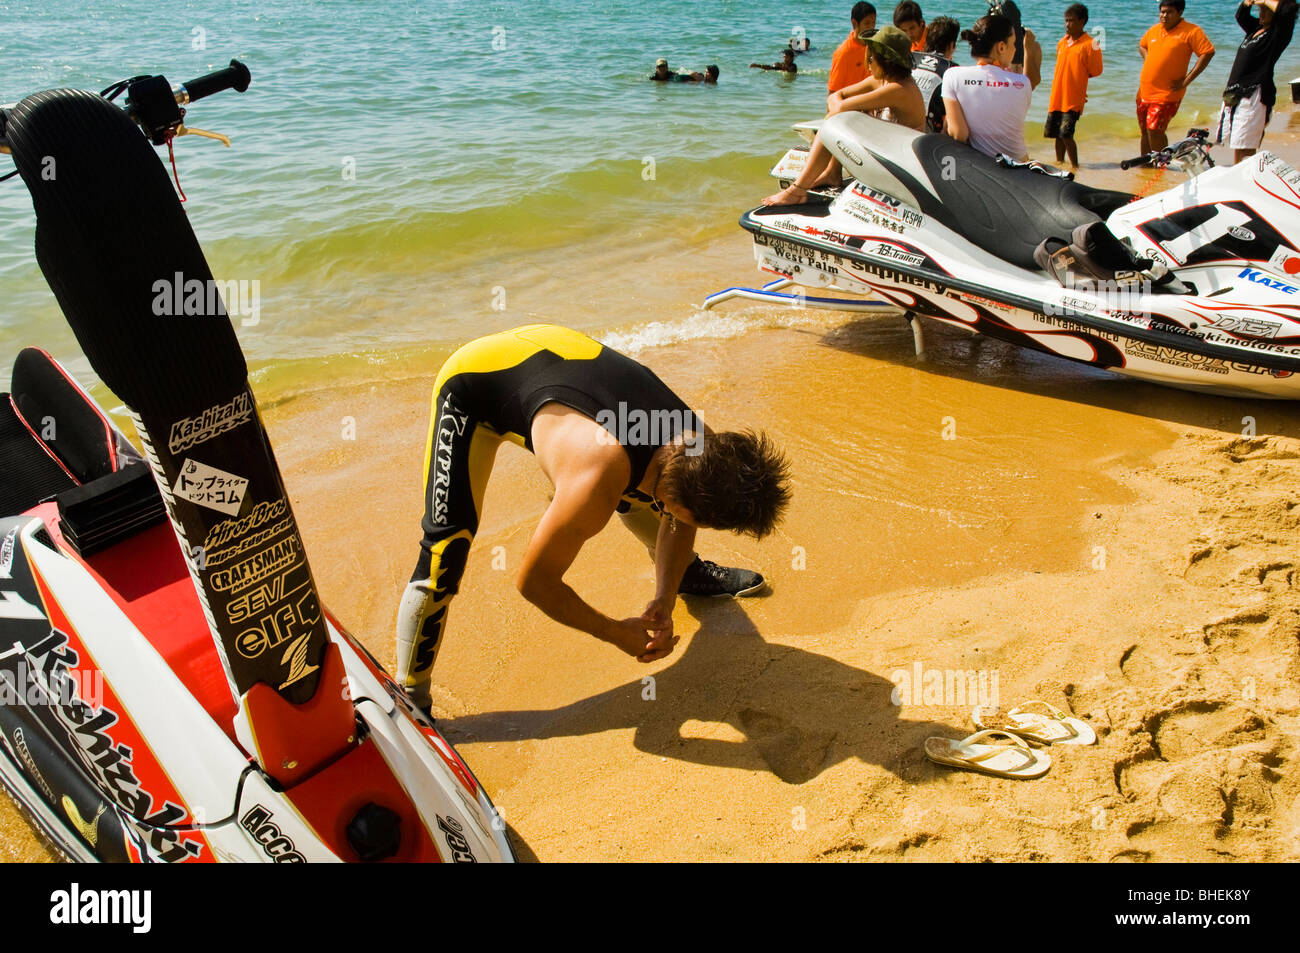 11th World Watercross King's Cup - Open 2006 Pattaya, Thailand - participant doing preparatory exercise before - Stock Image